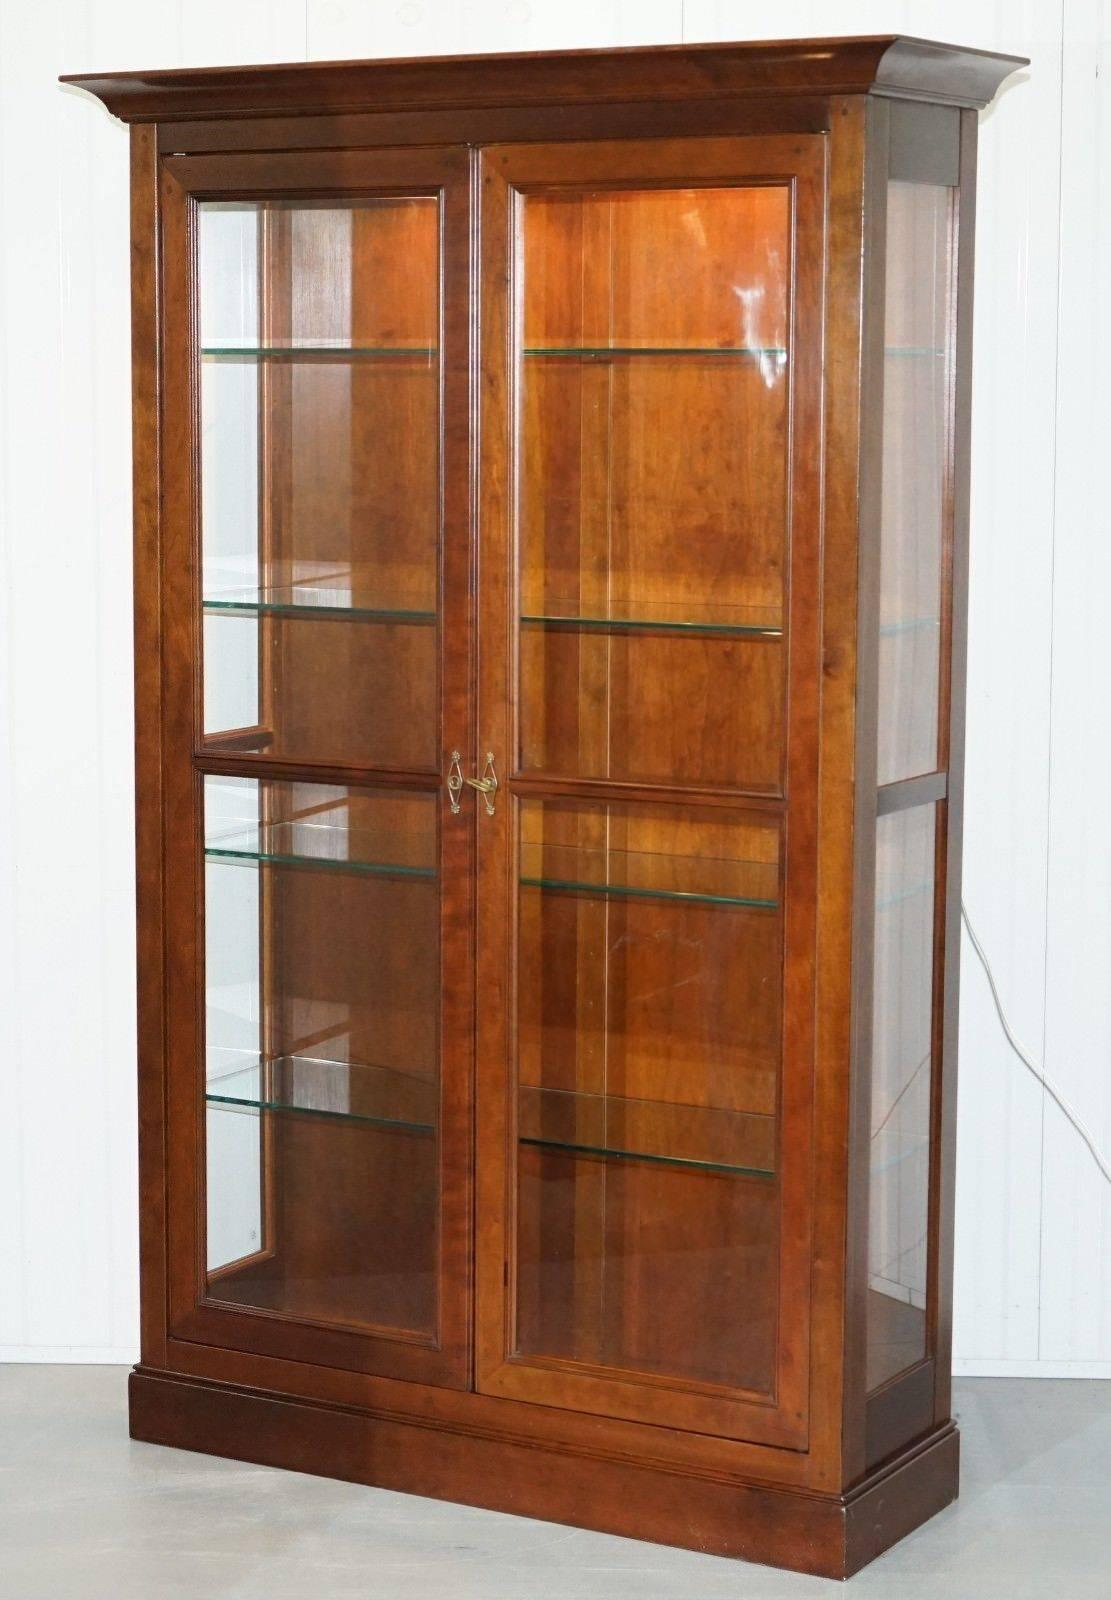 French Provincial Stunning Grange Solid Cherry Wood Glass Display Cabinet  With Lights Bookcase For Sale